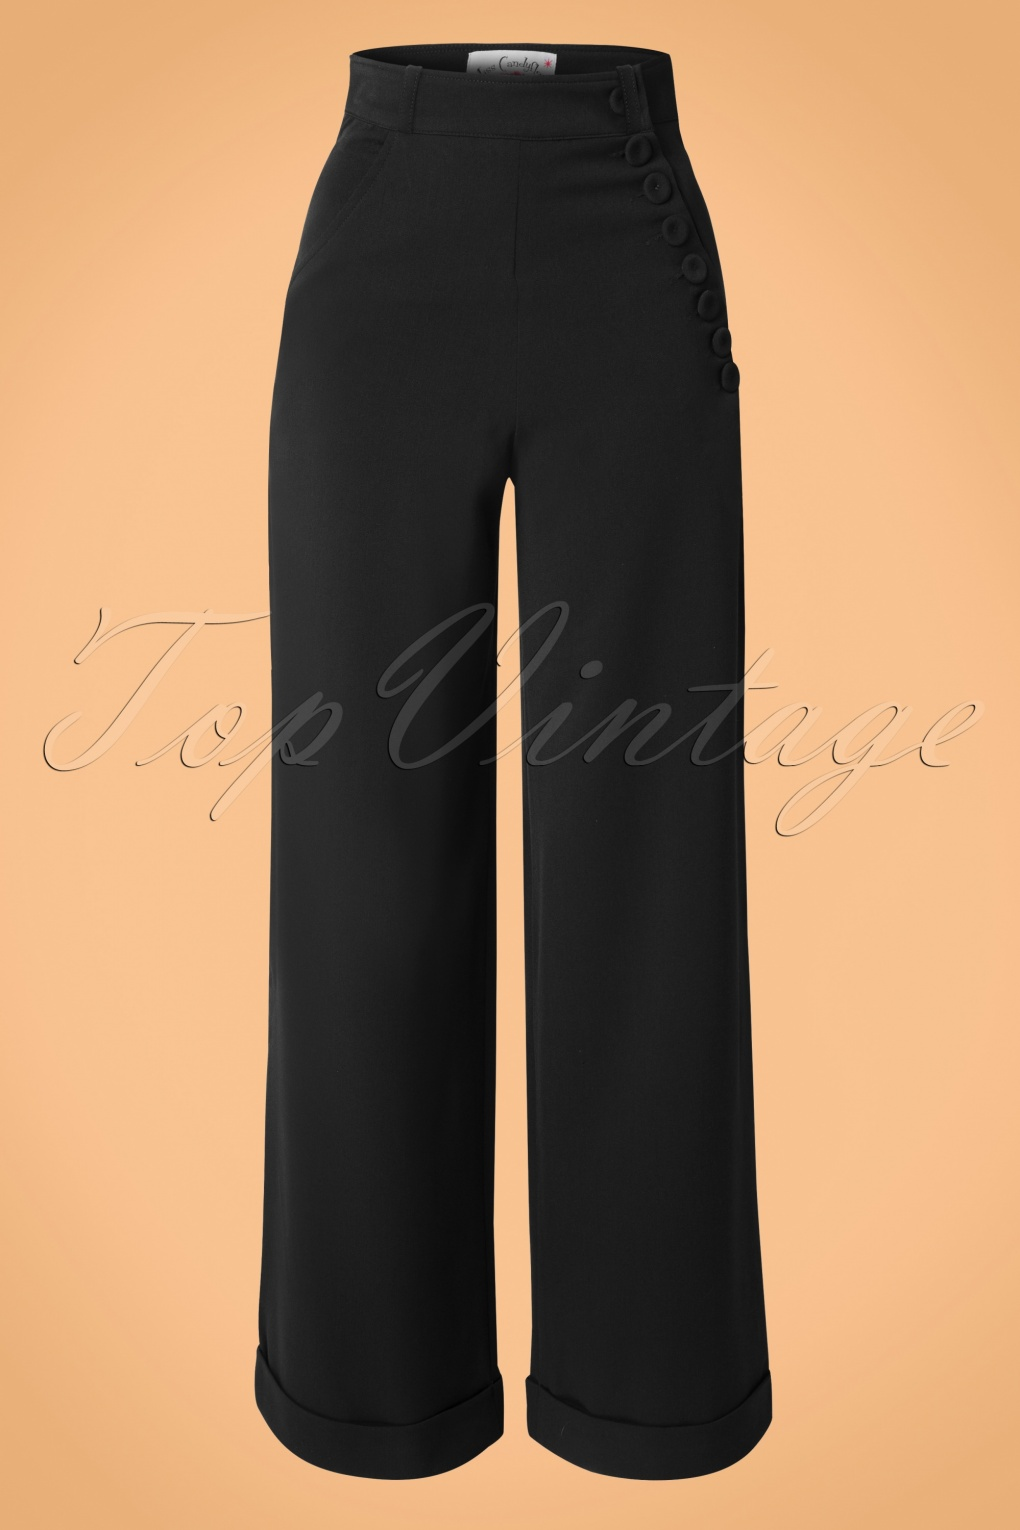 Vintage High Waisted Trousers, Sailor Pants, Jeans 40s Nicolette High Waisted Stretch Trousers in Black £71.88 AT vintagedancer.com